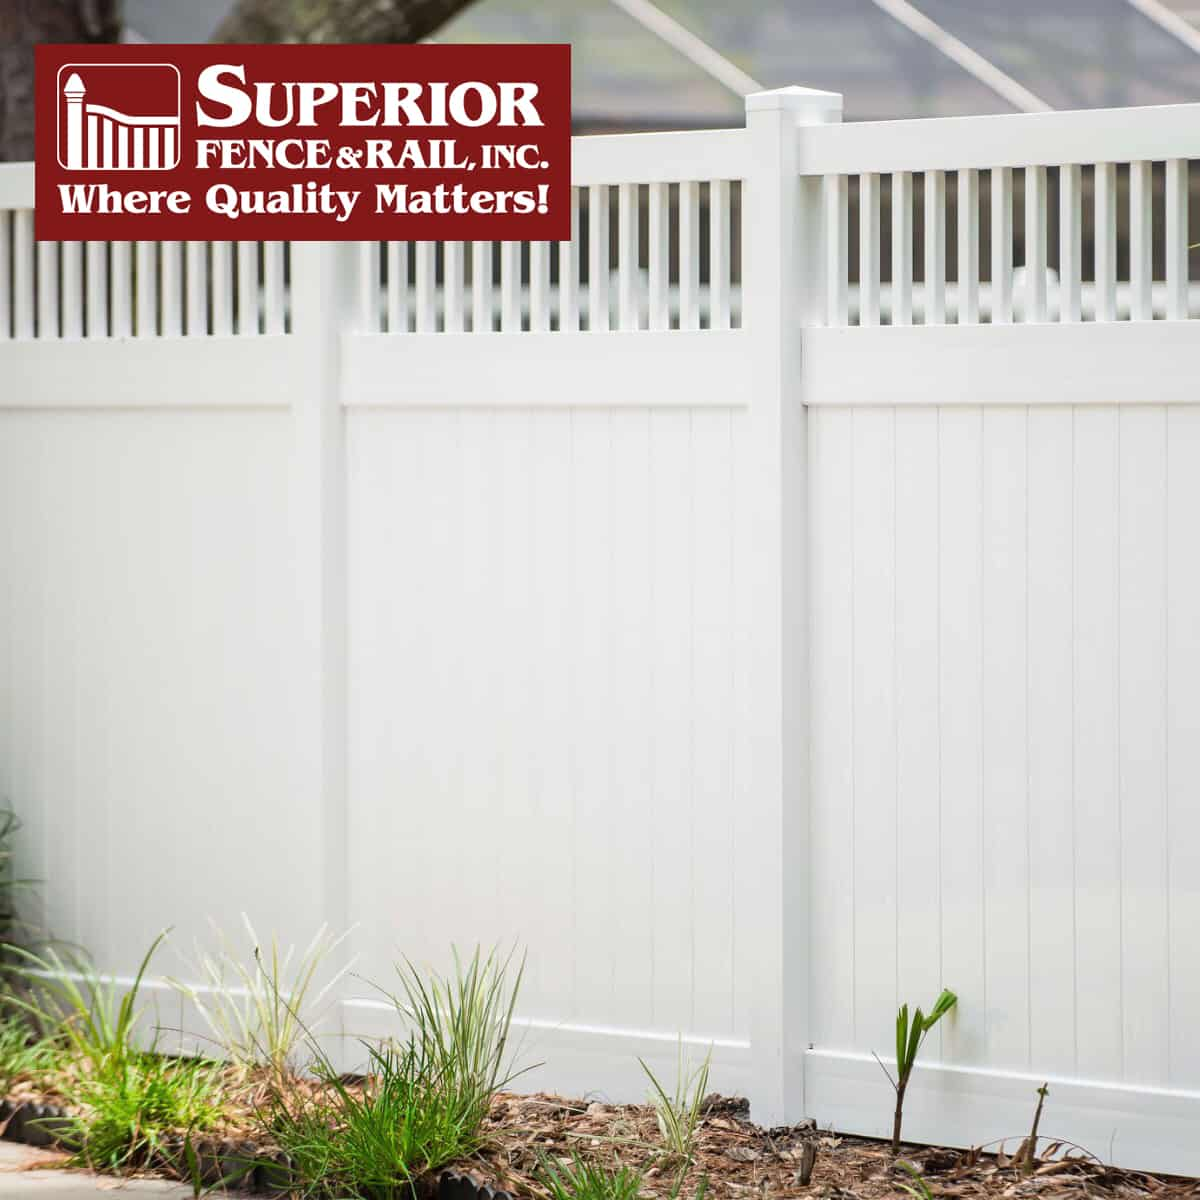 East Grand Rapids fence company contractor